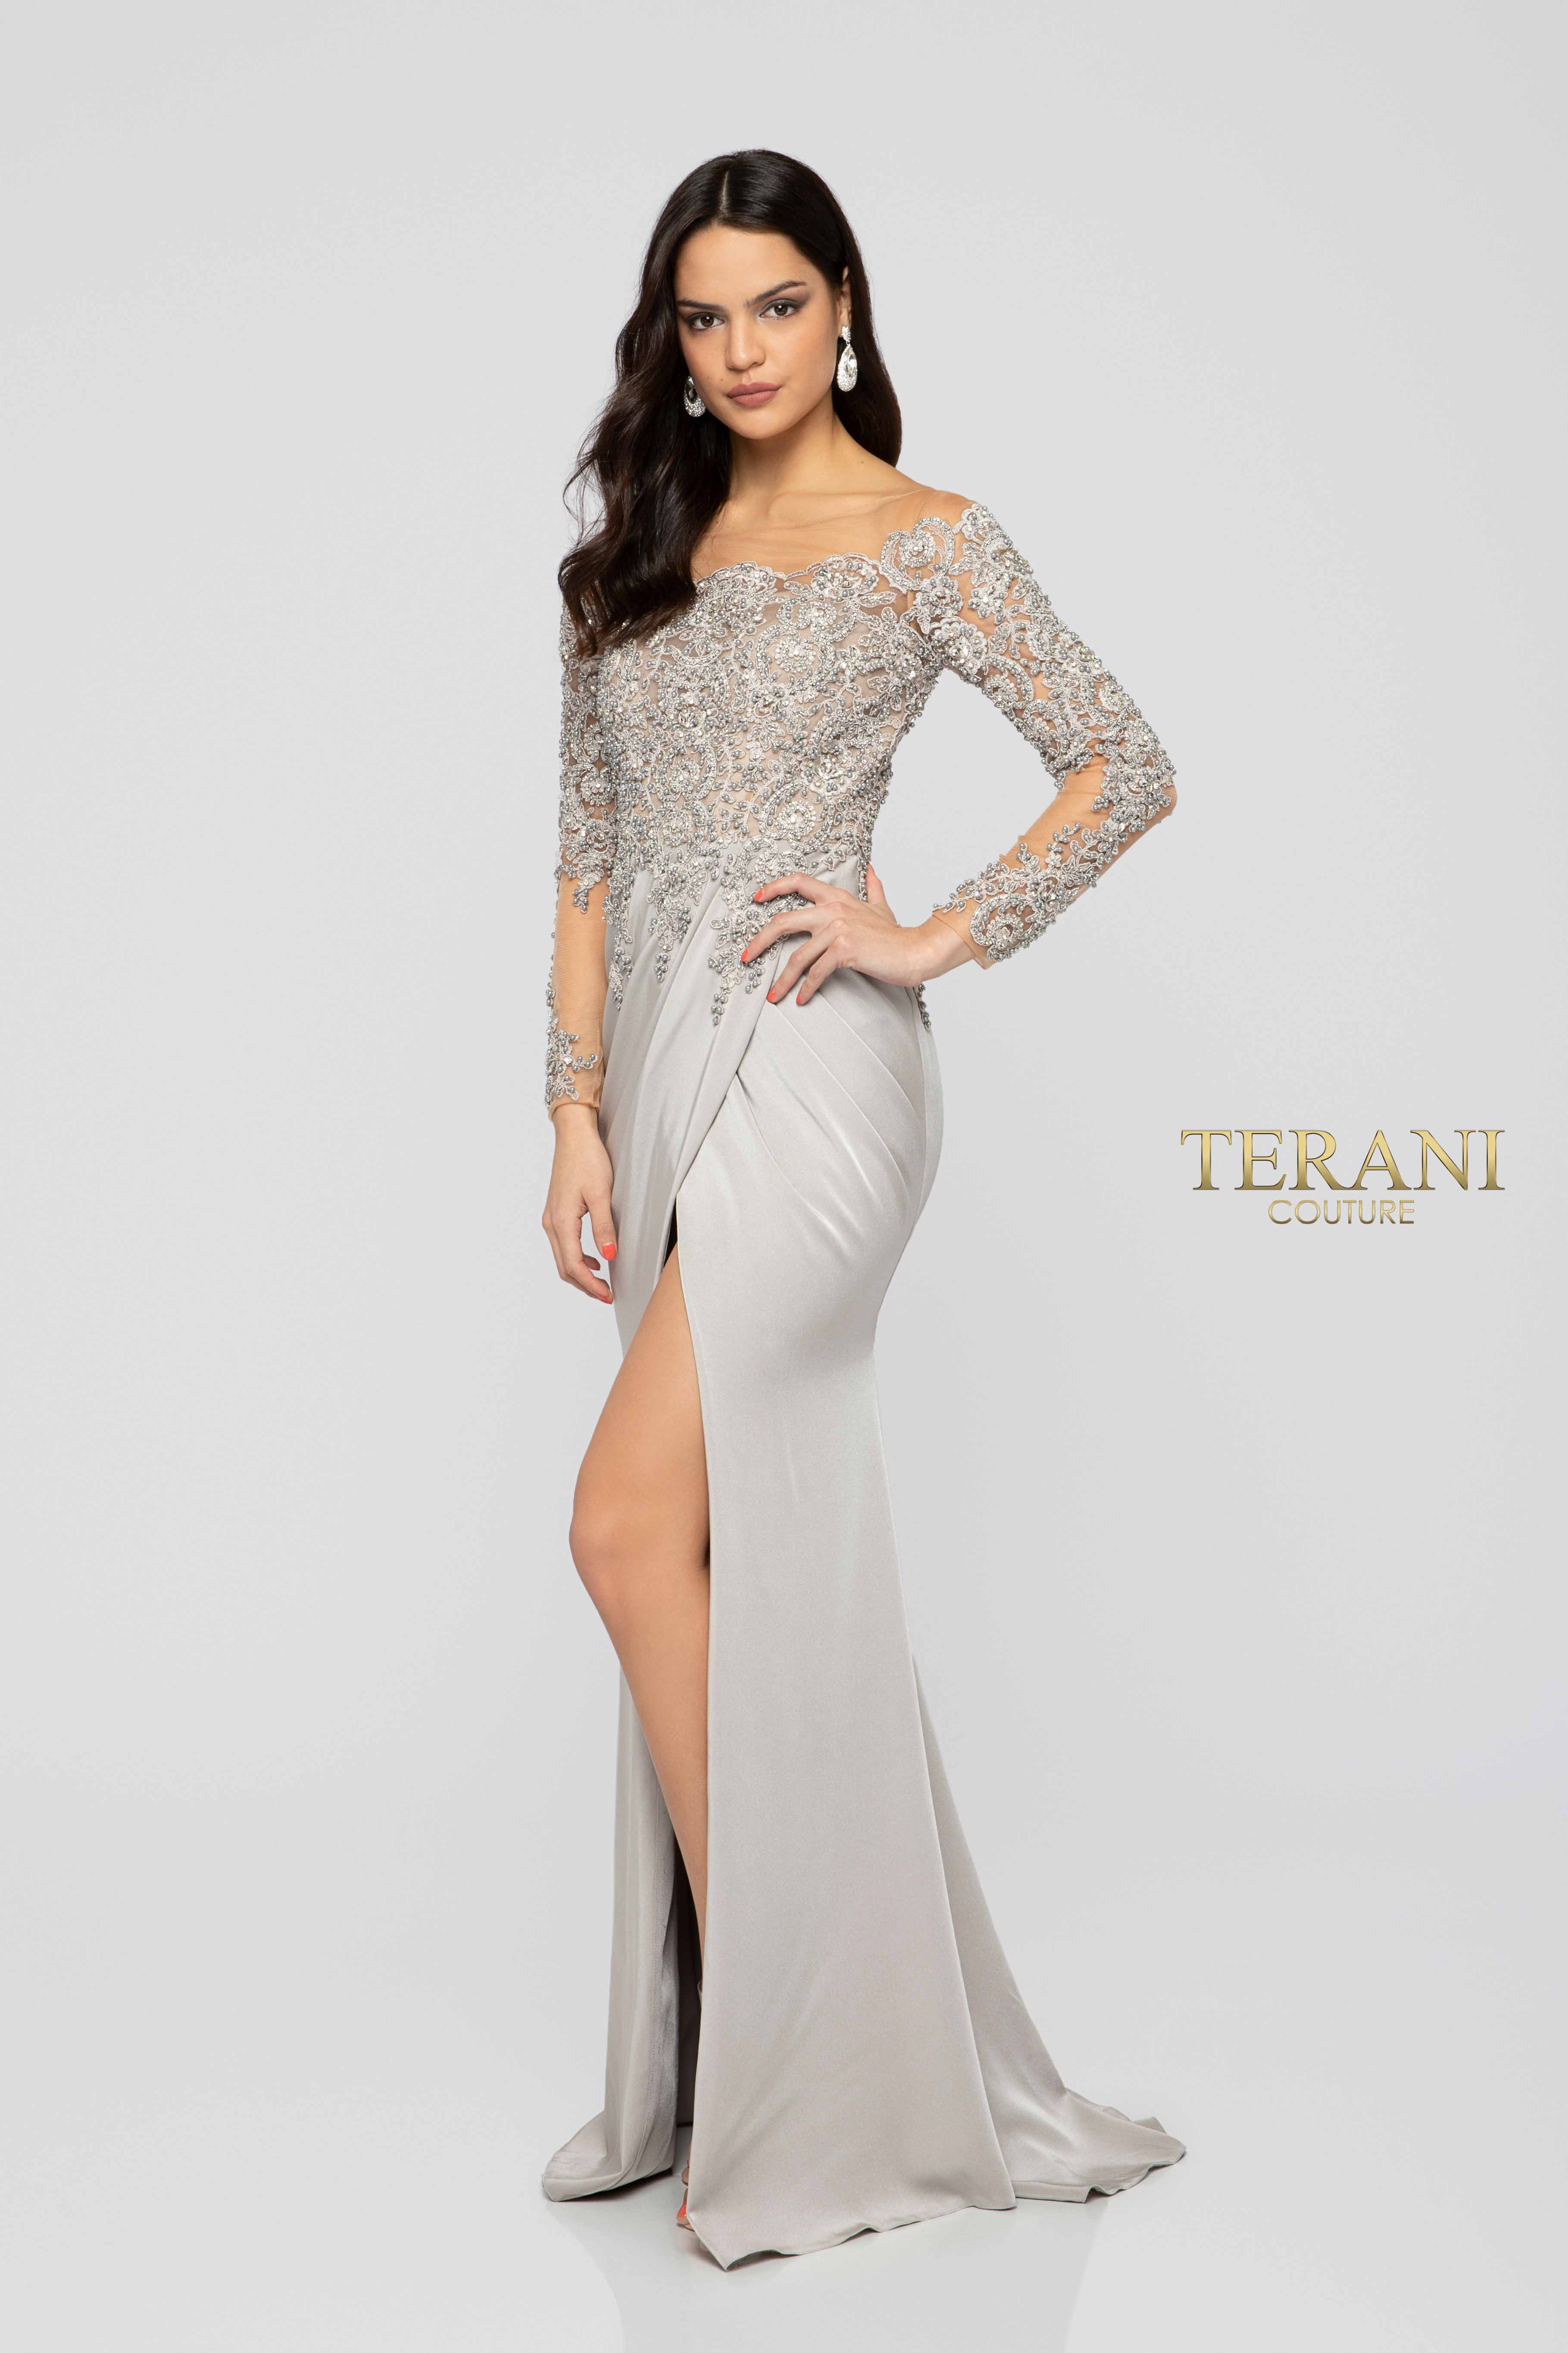 7dc4c446f74 Glamour By Terani Couture High Neck Illusion Beaded Bodice Long Dress